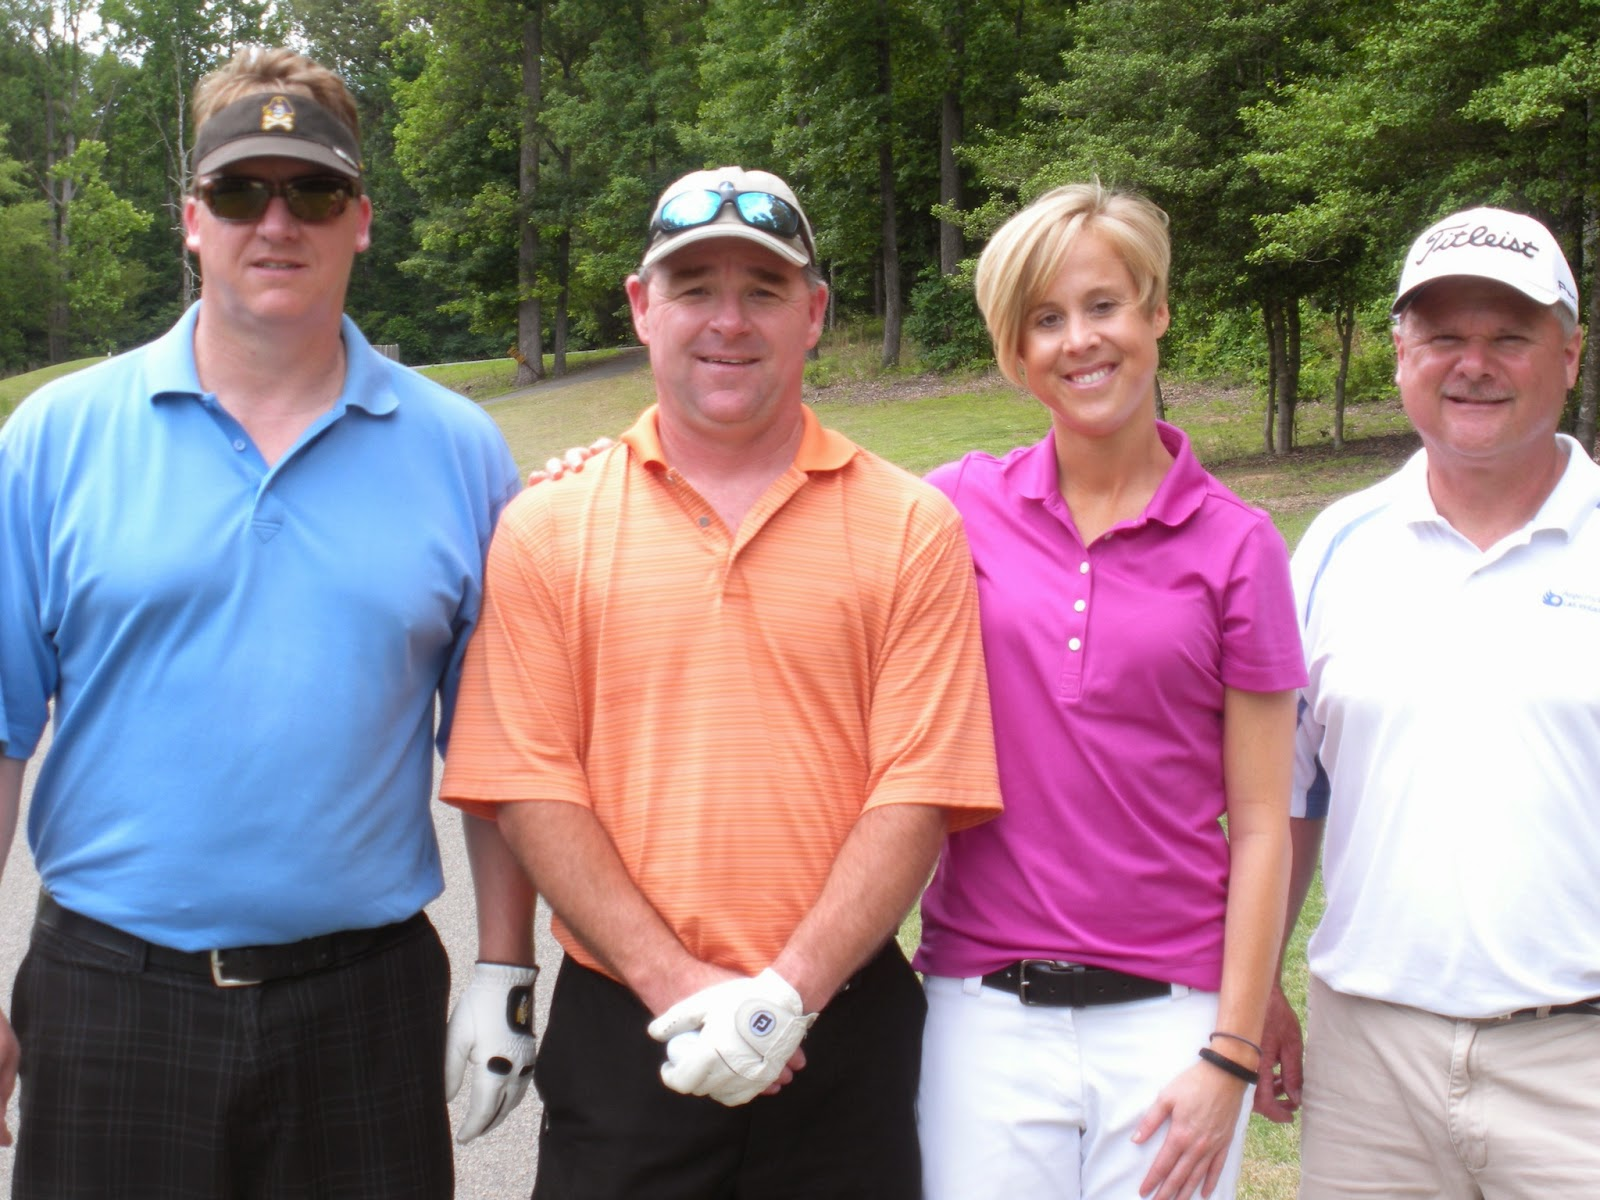 Virginia Pond's 13th Annual Charity Golf Tournament